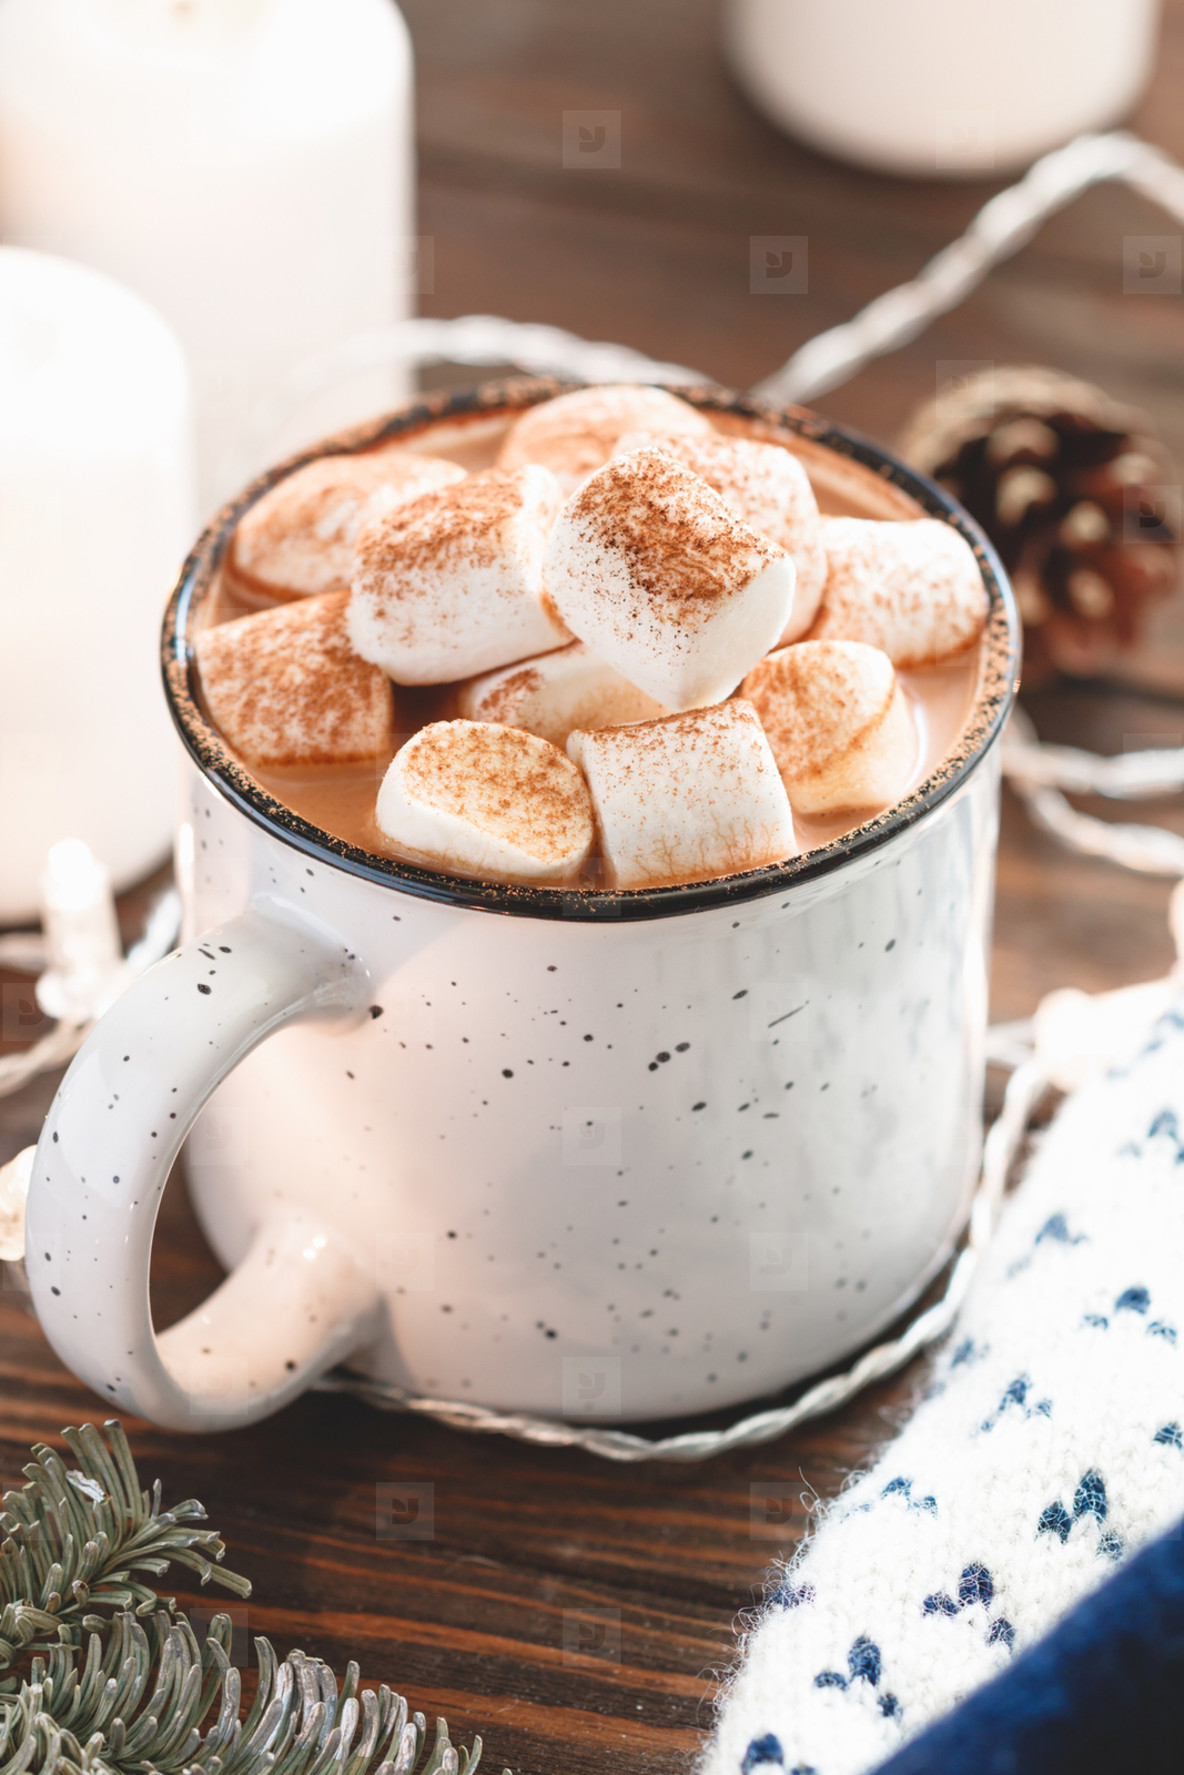 Hot chocolate with marshmallow in a white ceramic mug among winter things and decor on a wooden table  The concept of cosy holidays and New Year